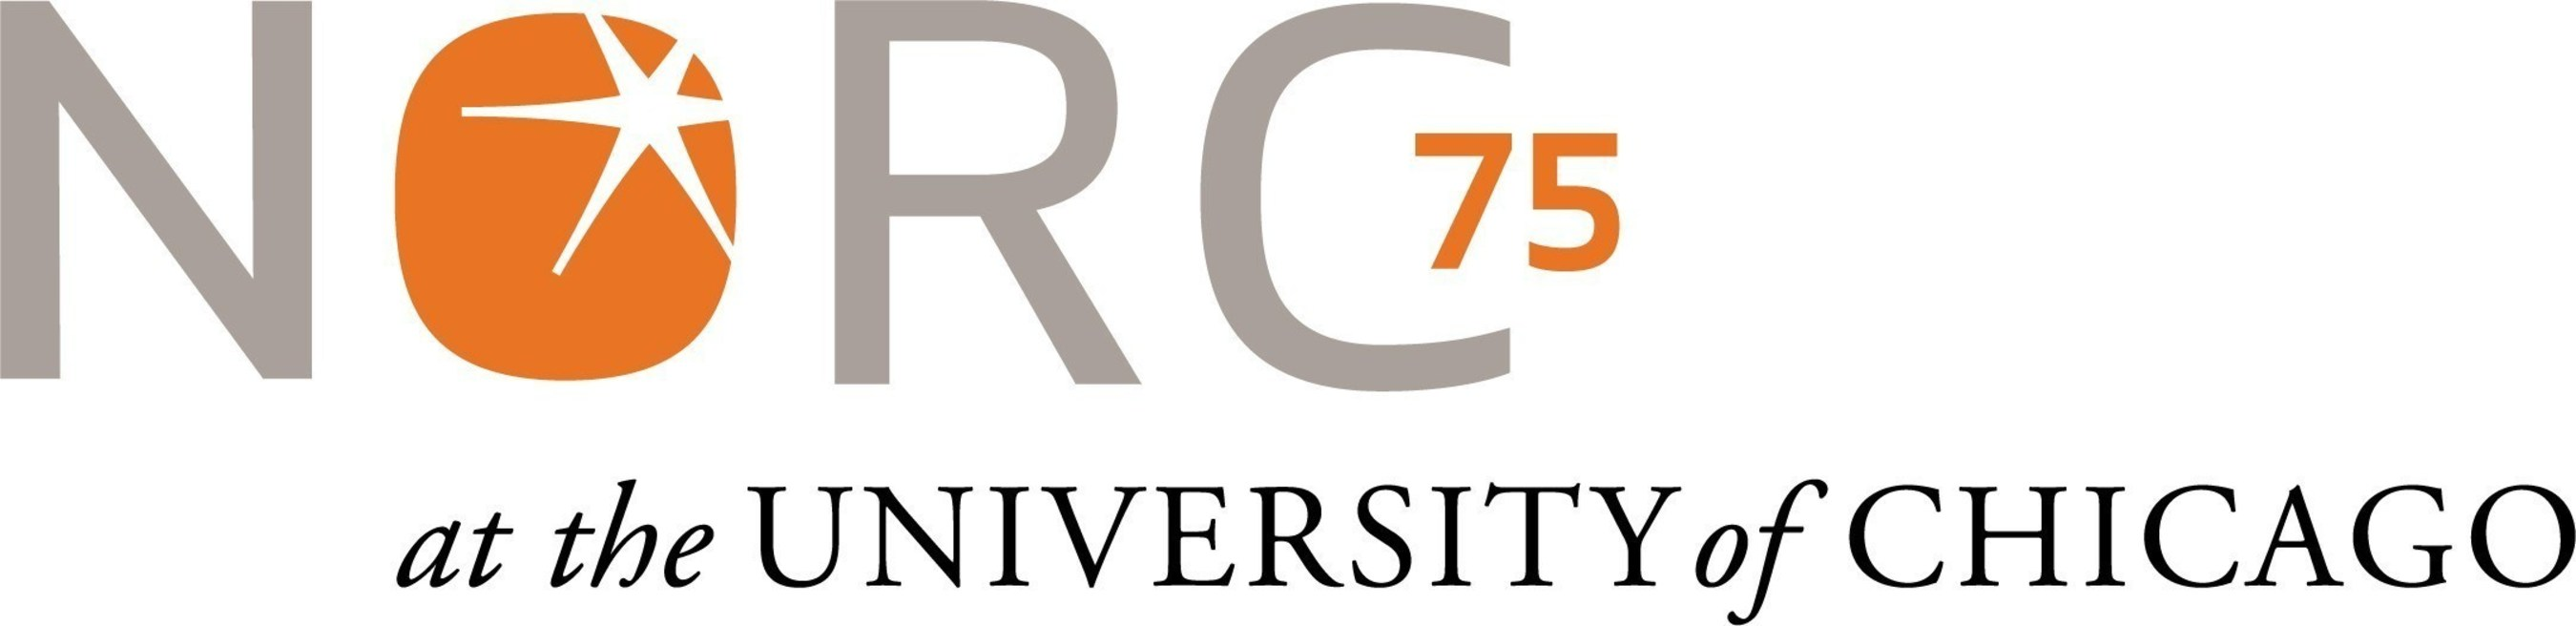 NORC at the University of Chicago 75th Anniversary logo